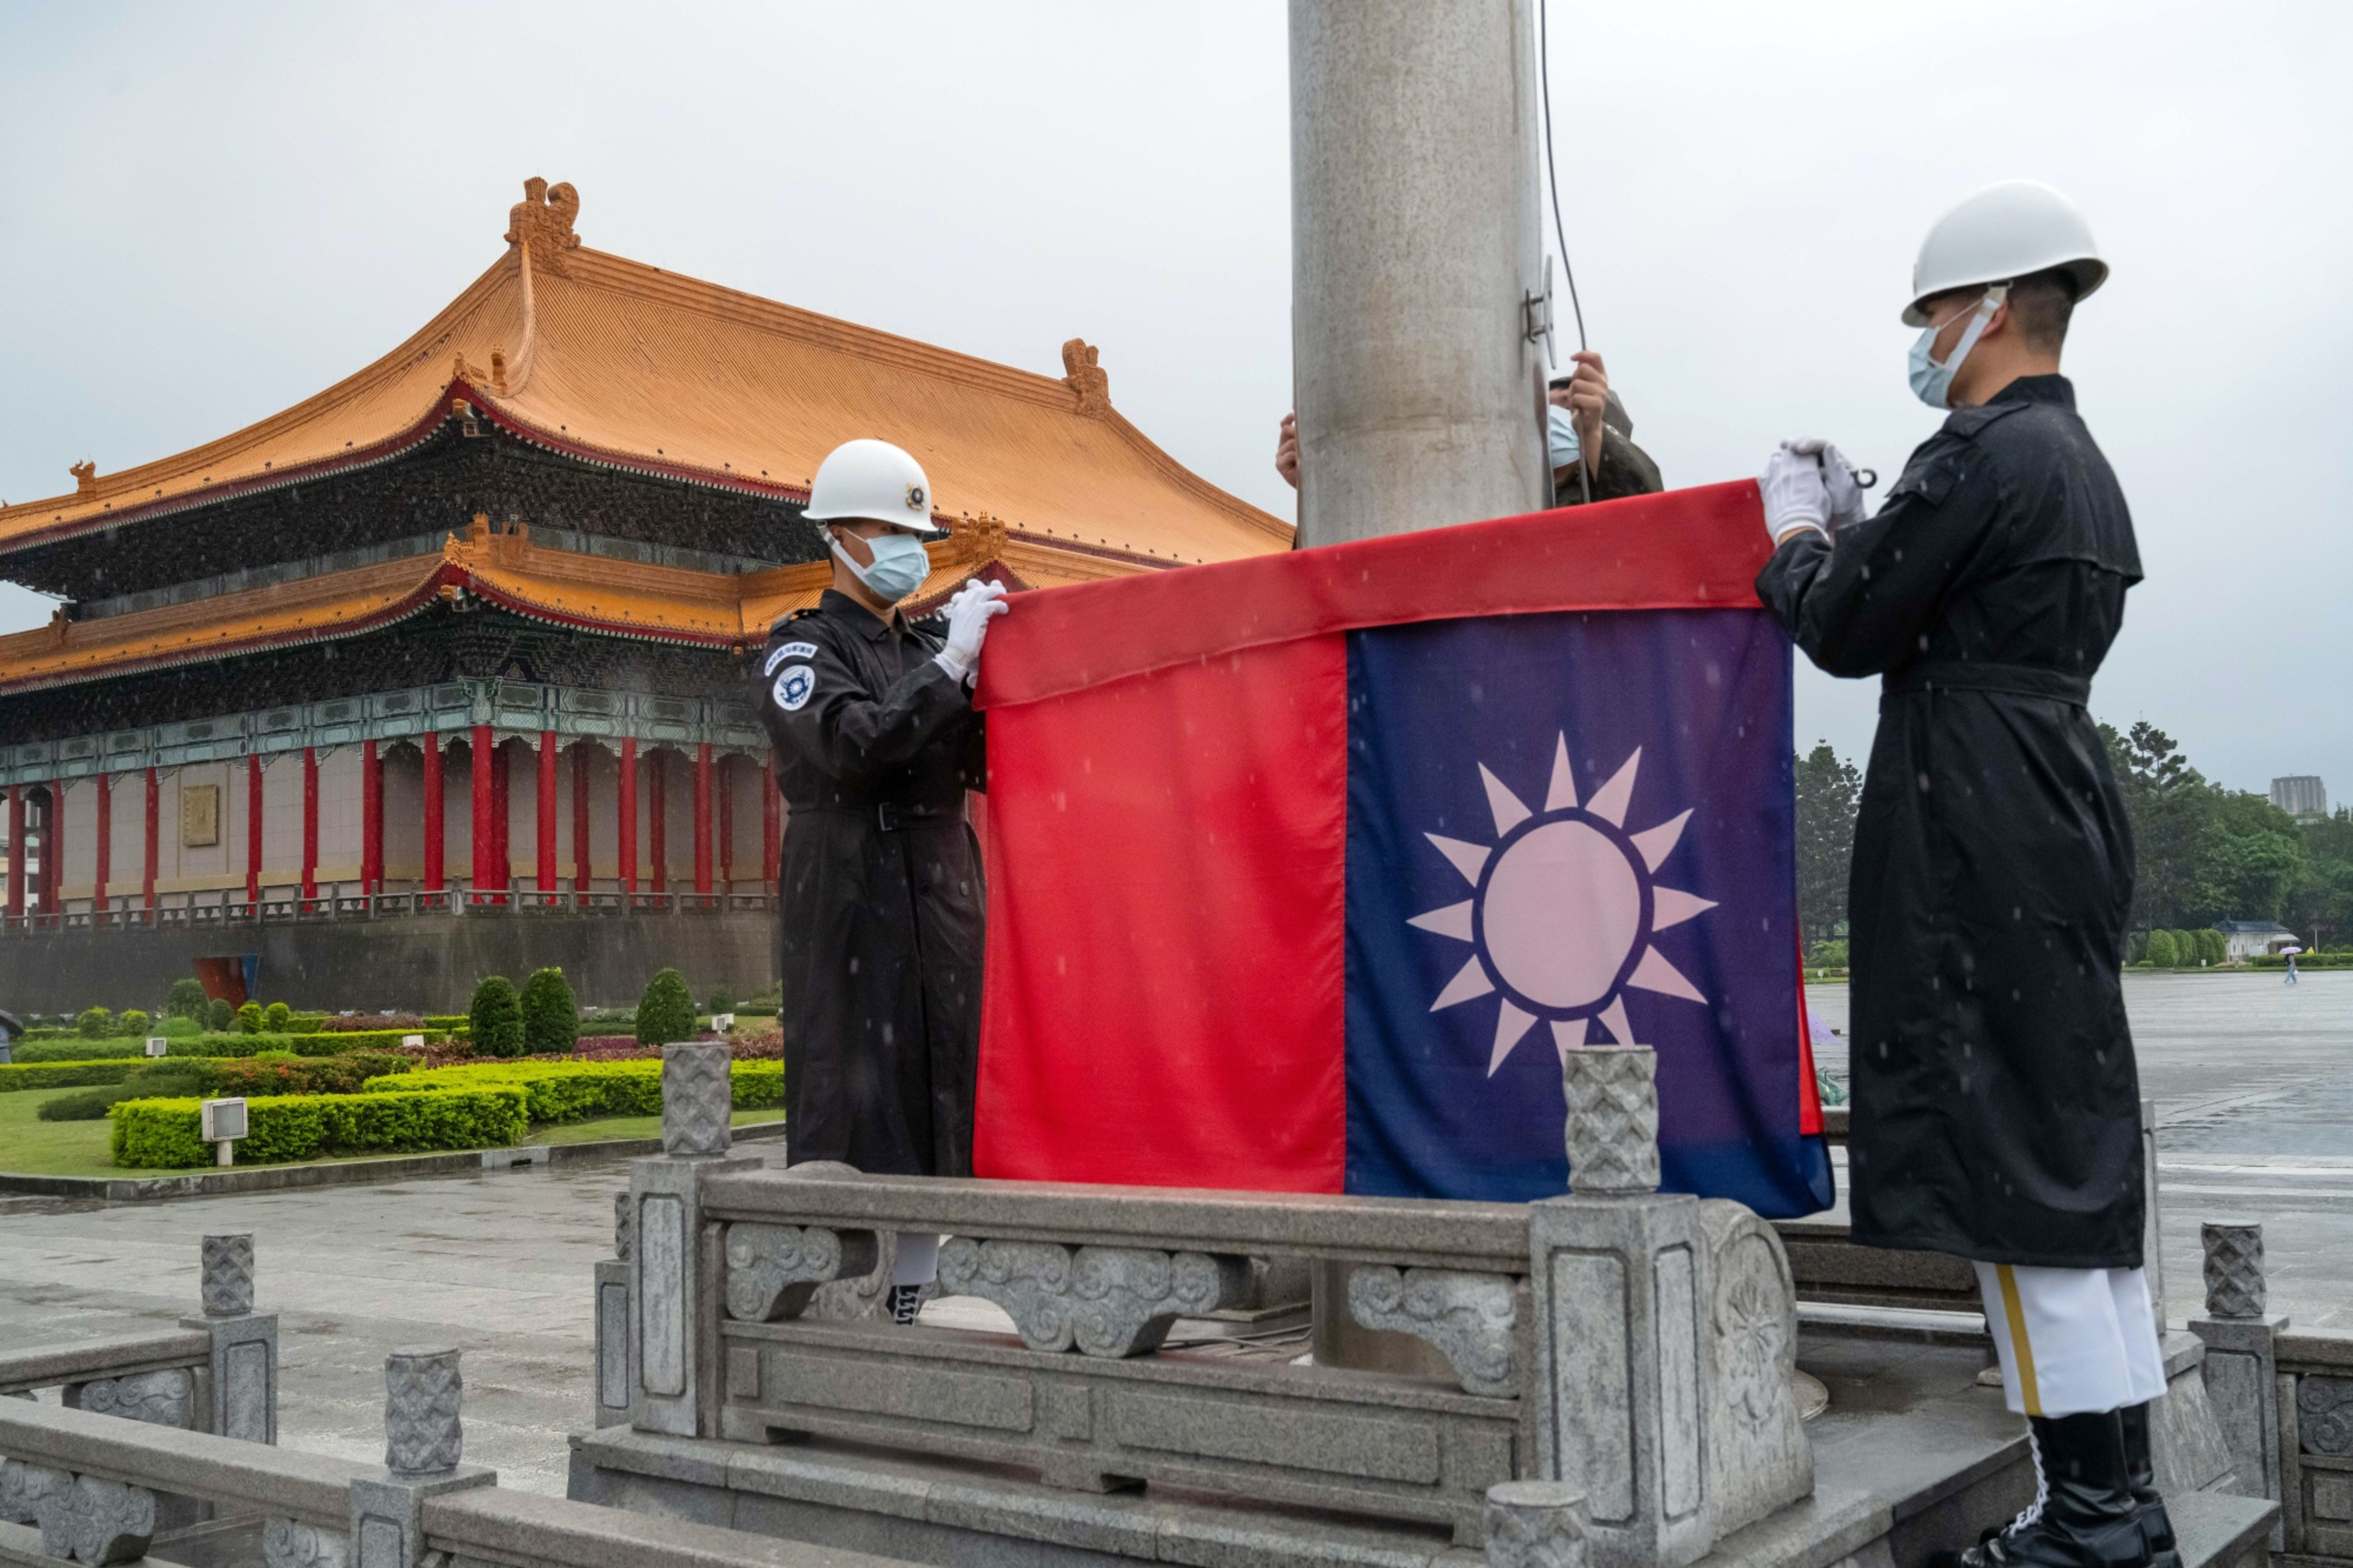 Honor guards wearing protective masks raise a Taiwanese flag at the National Chiang Kai-shek Memorial Hall in Taipei, Taiwan, on Wednesday, June 3, 2021. Taiwan'